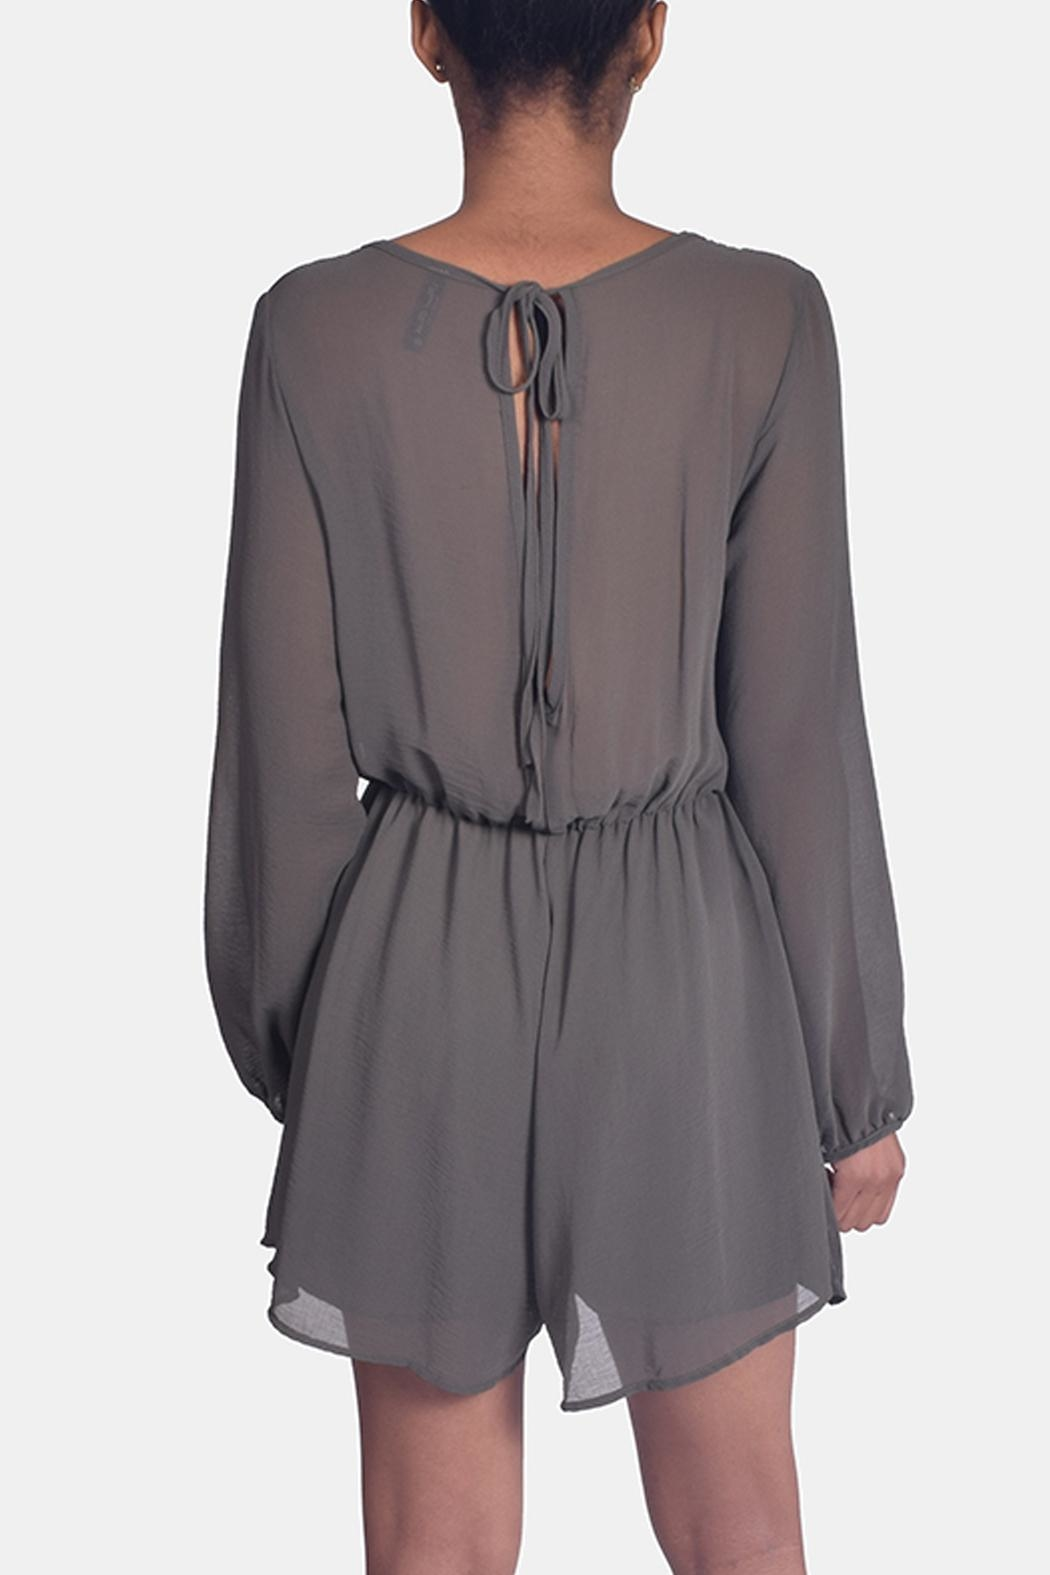 Final Touch Olive Chiffon Romper - Side Cropped Image